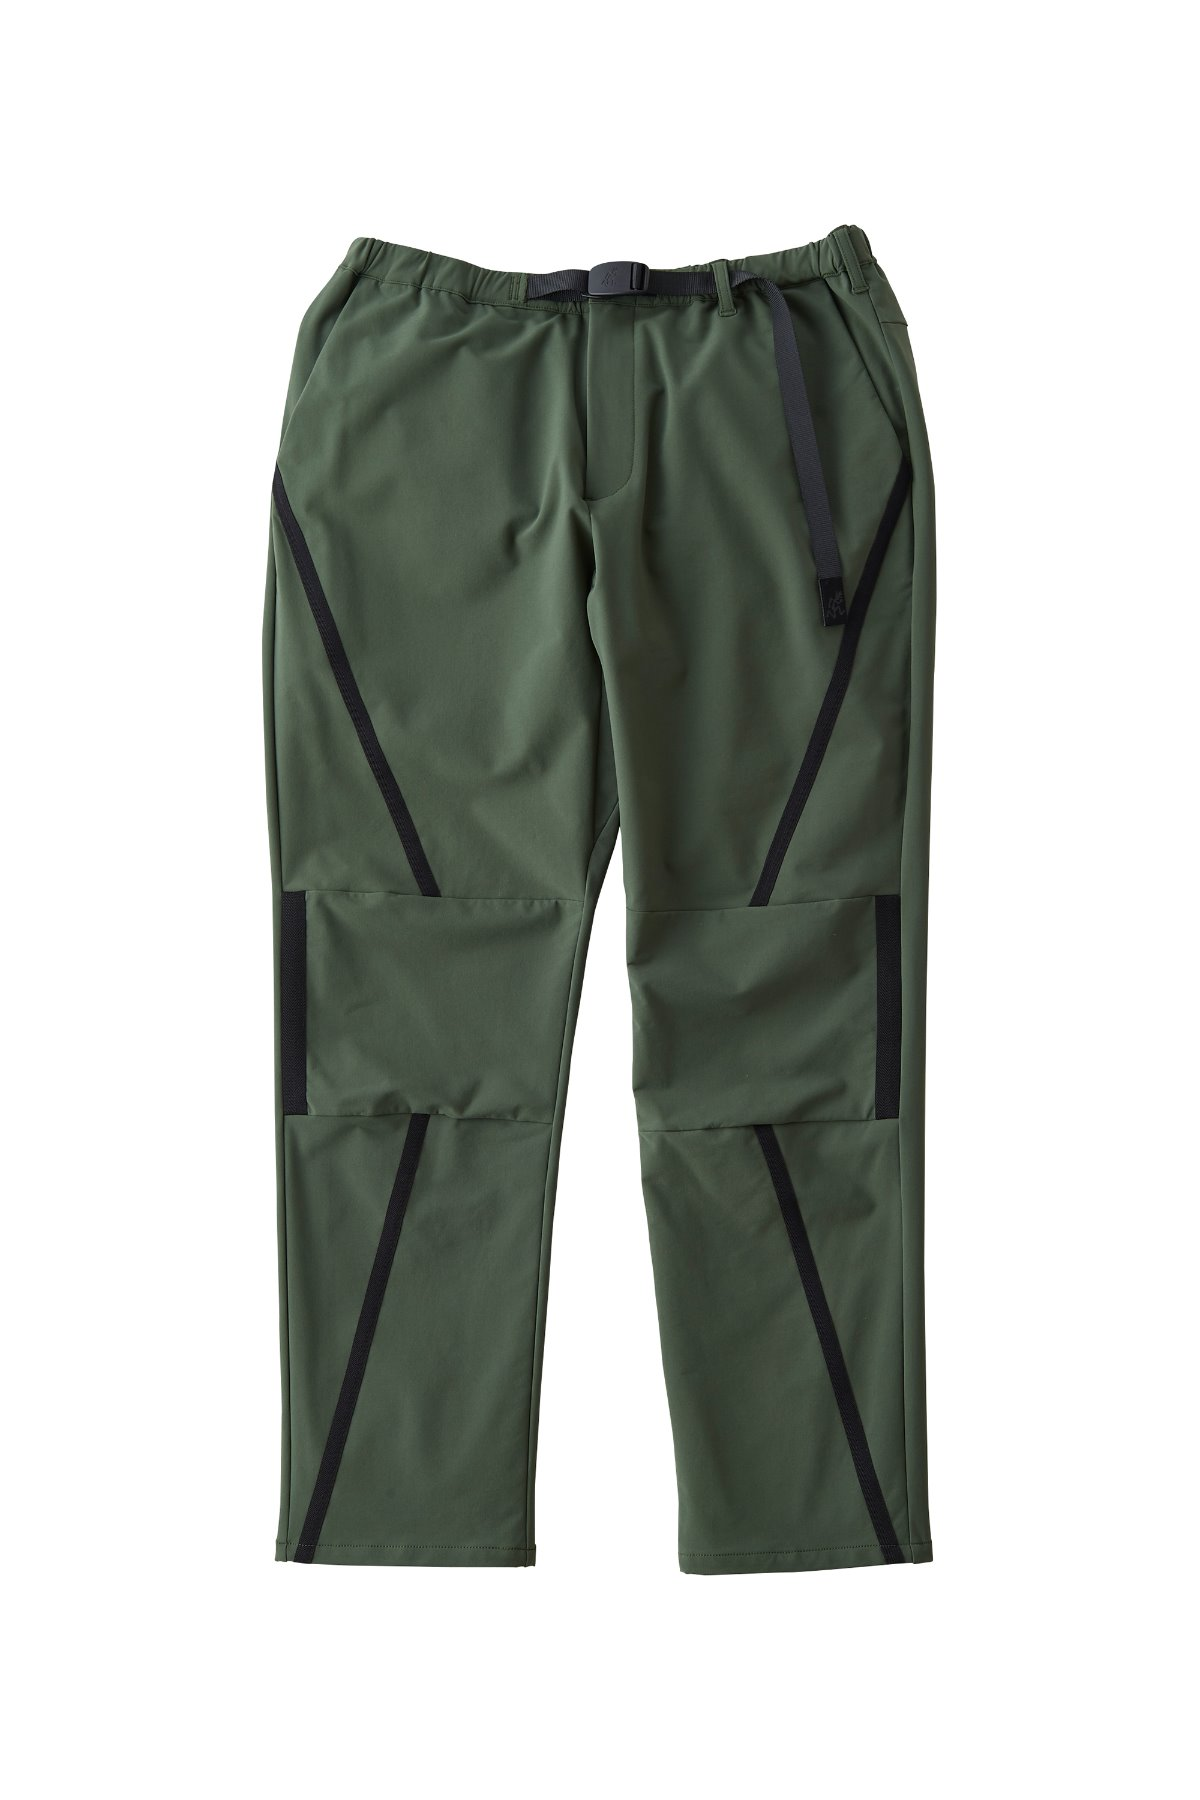 STORMFLEECE SWITCH PANTS DEEP OLIVE